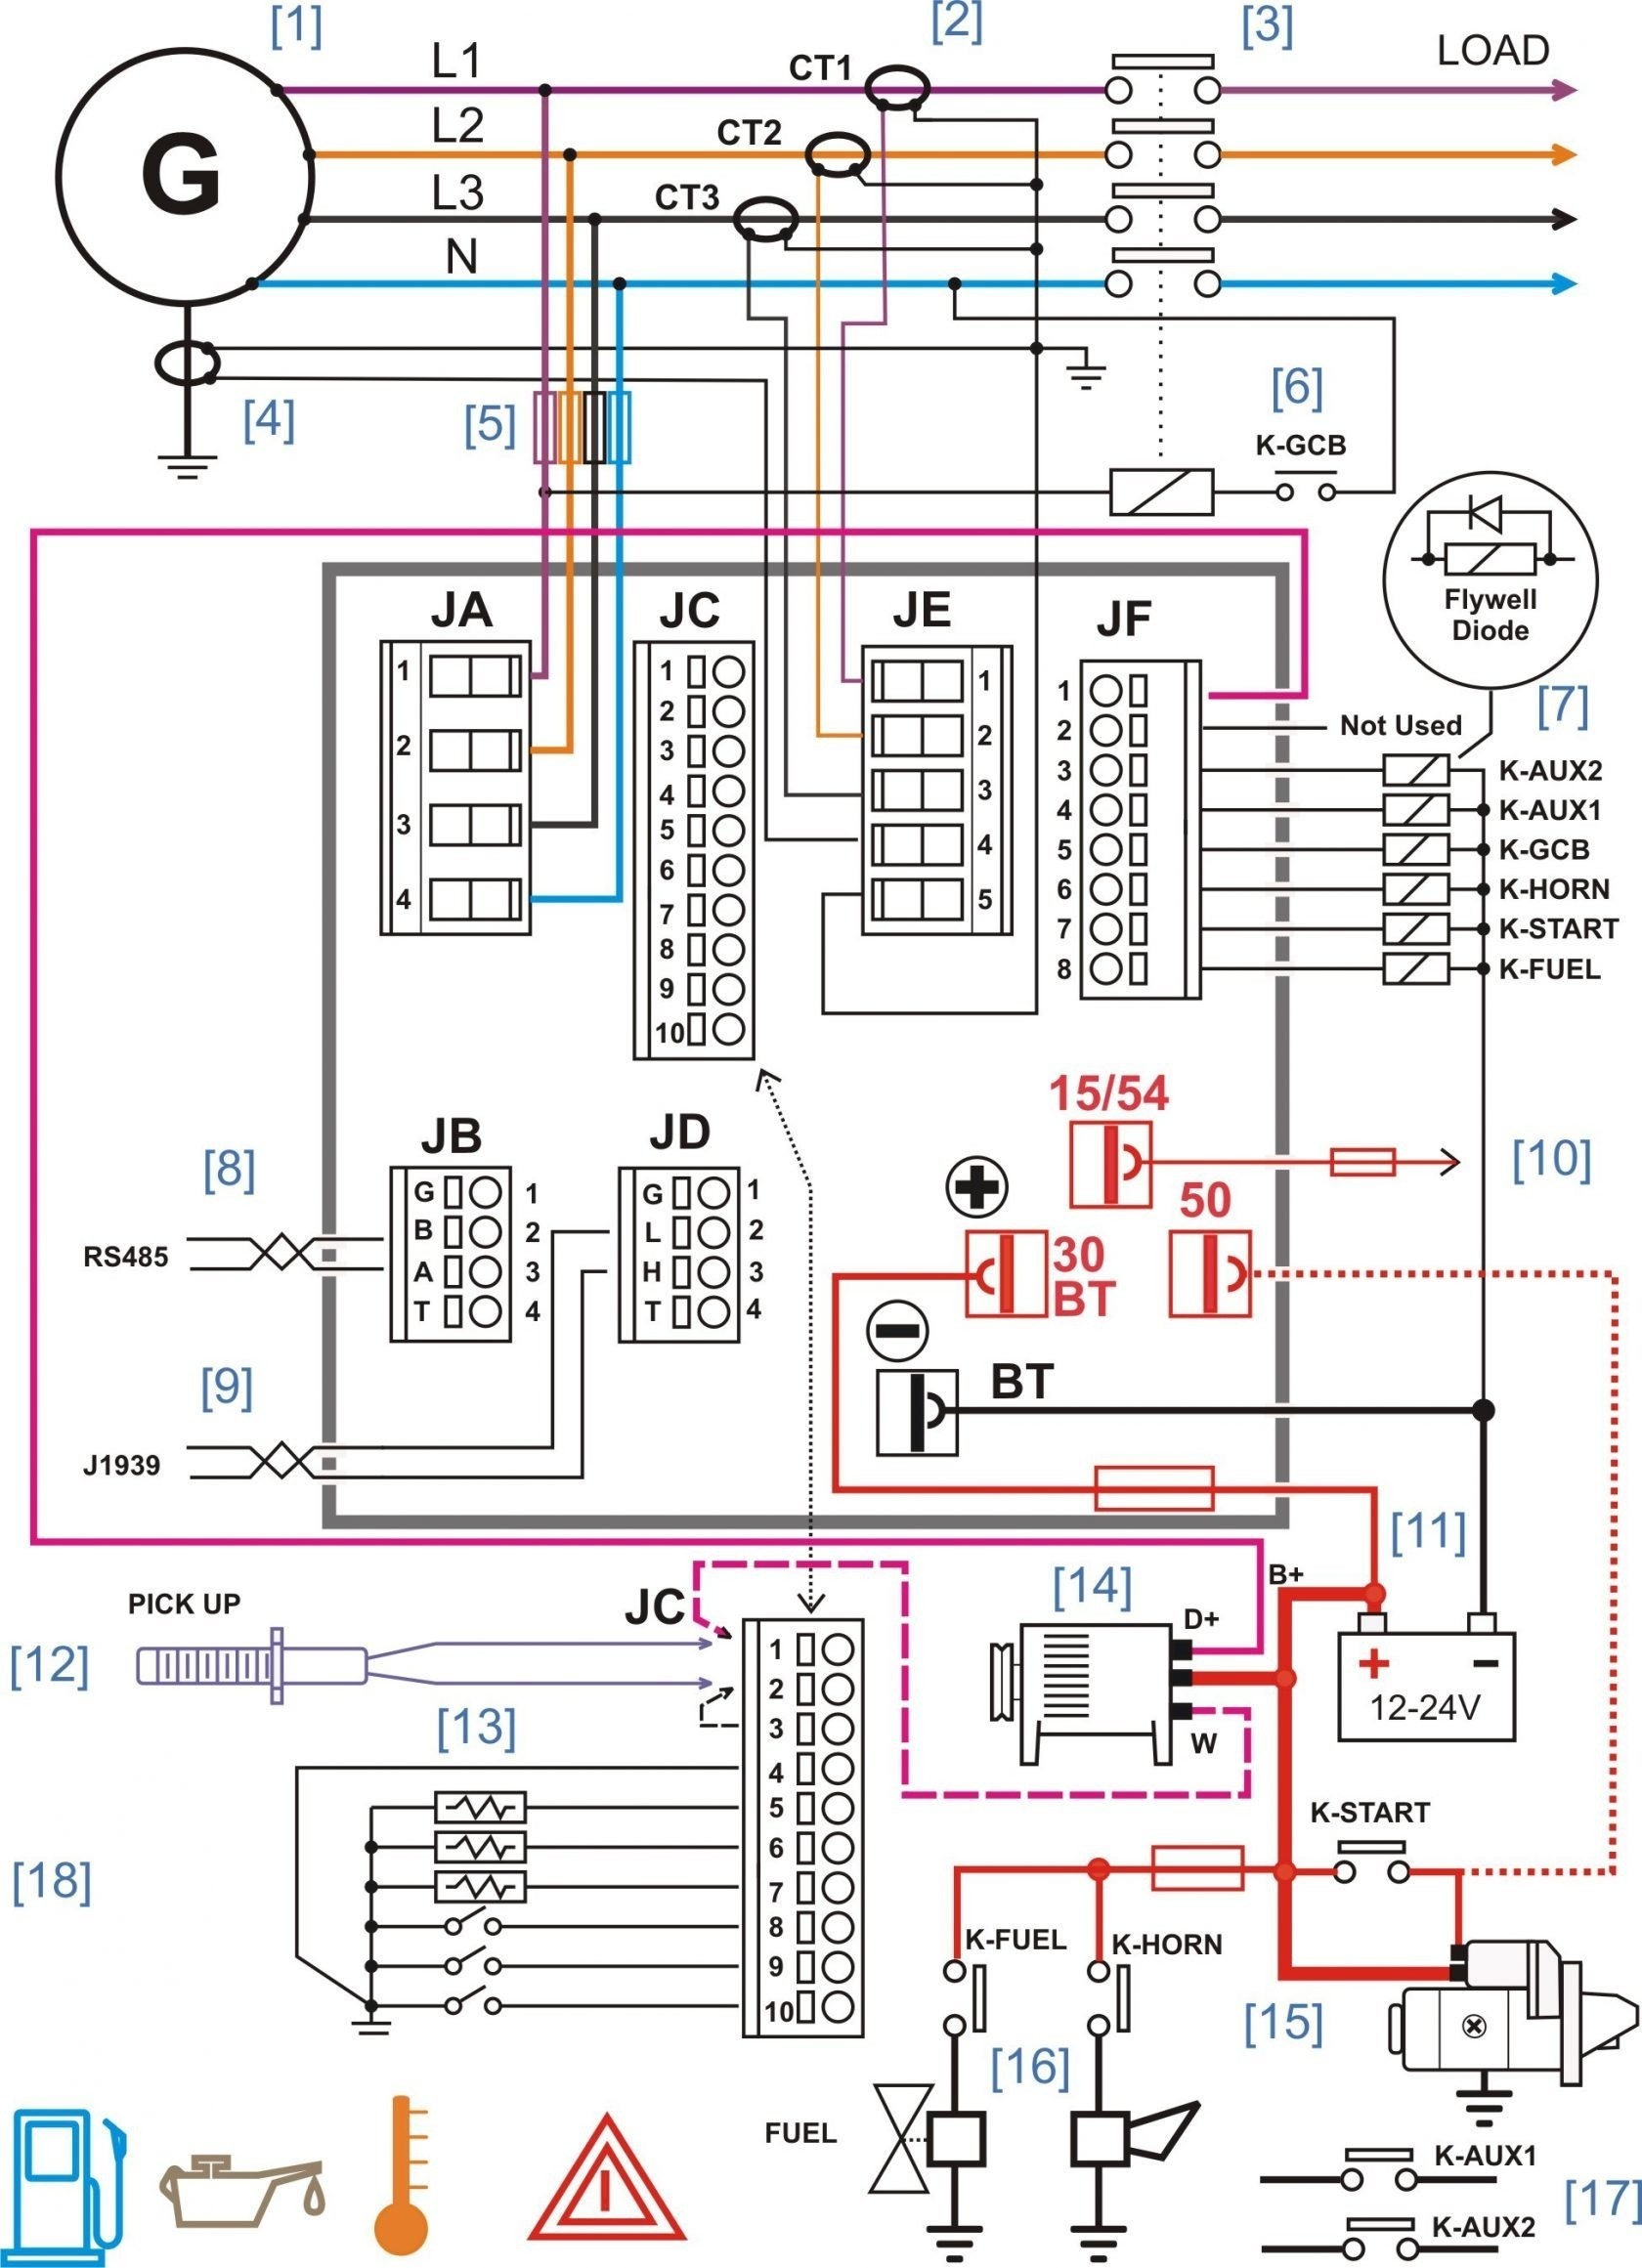 solar wiring diagram Download-Related Post 17-o